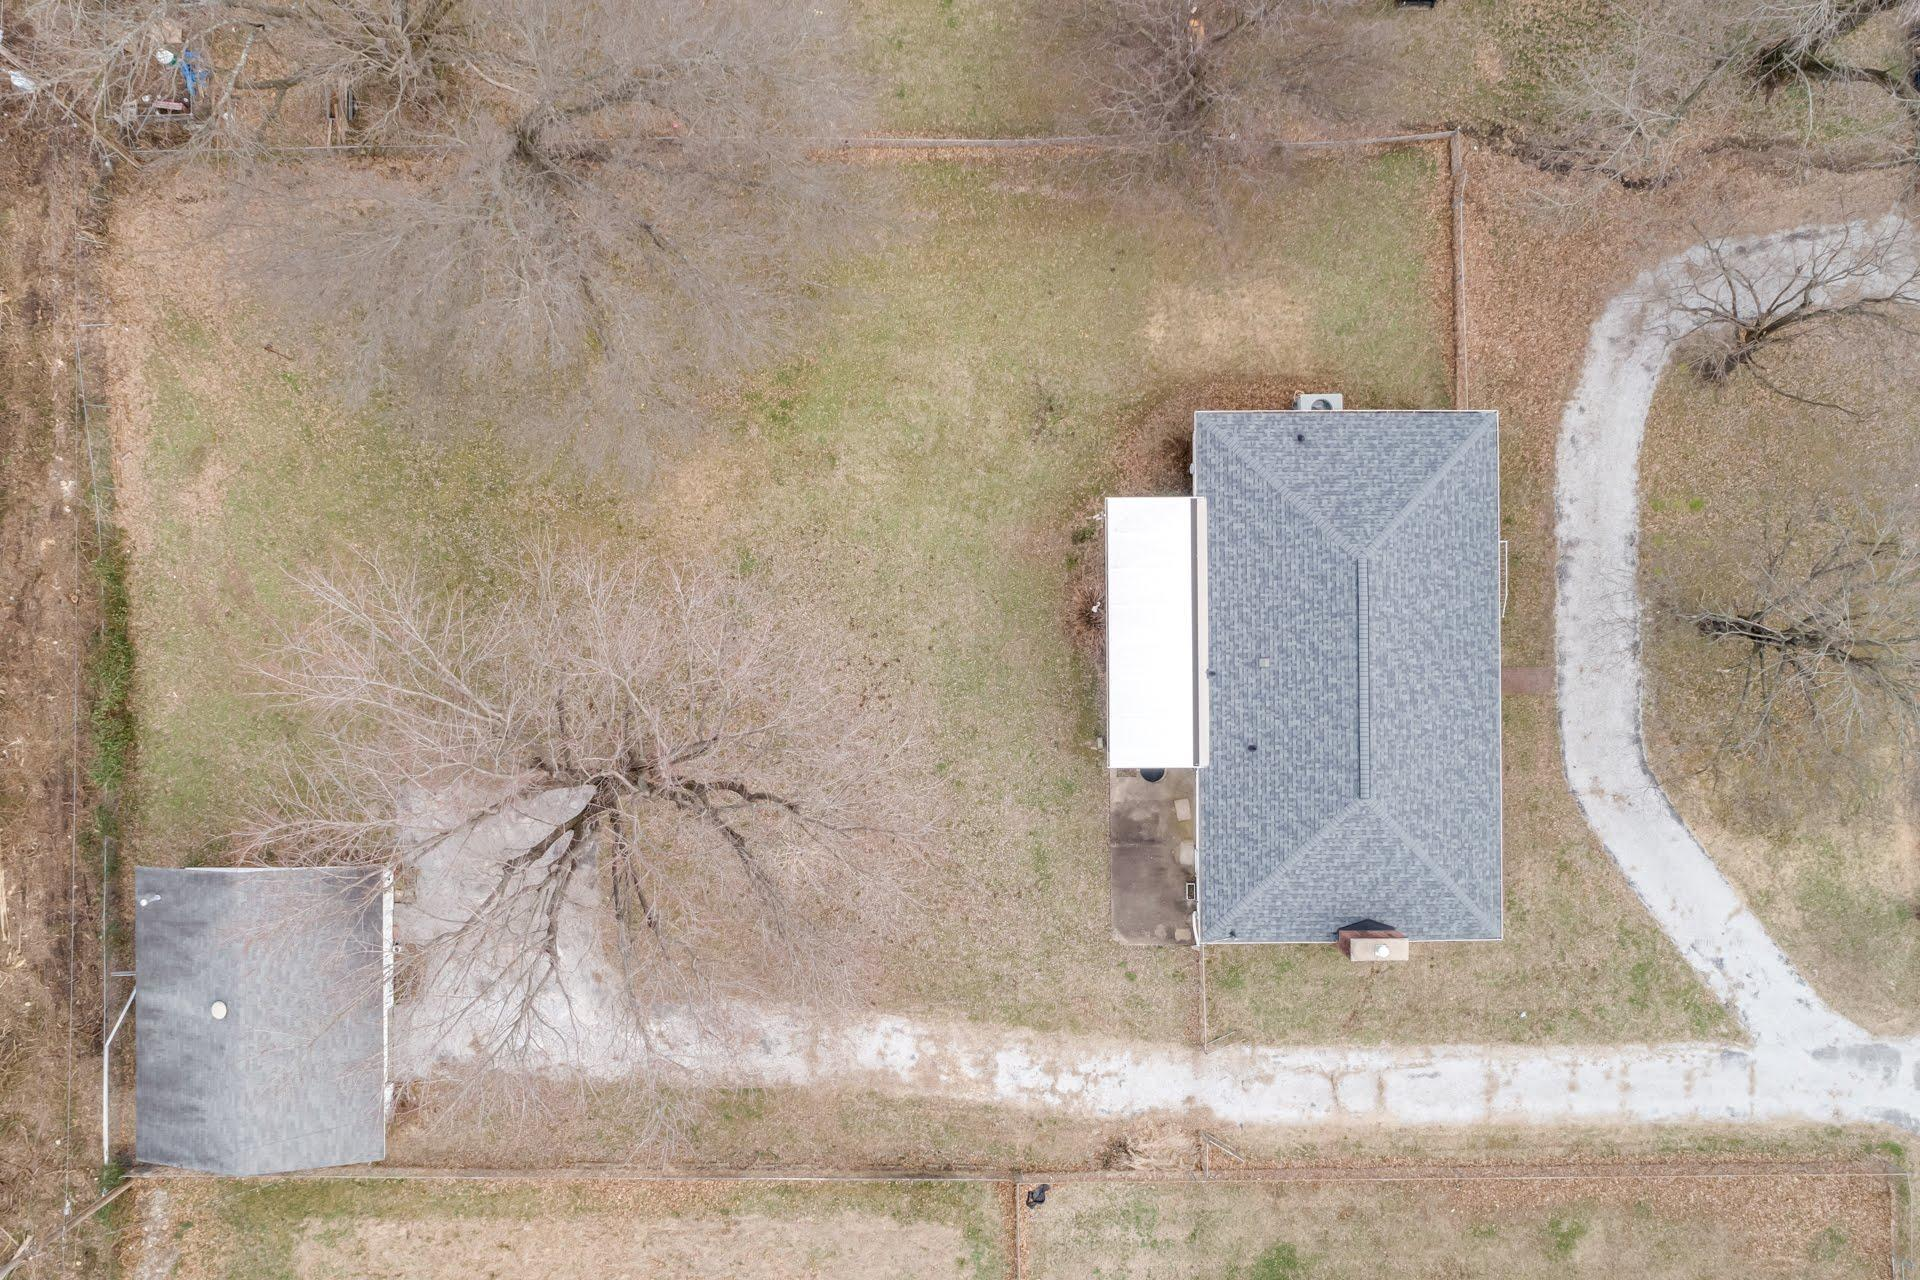 Closed | 410 16th Place Miami, OK 74354 23